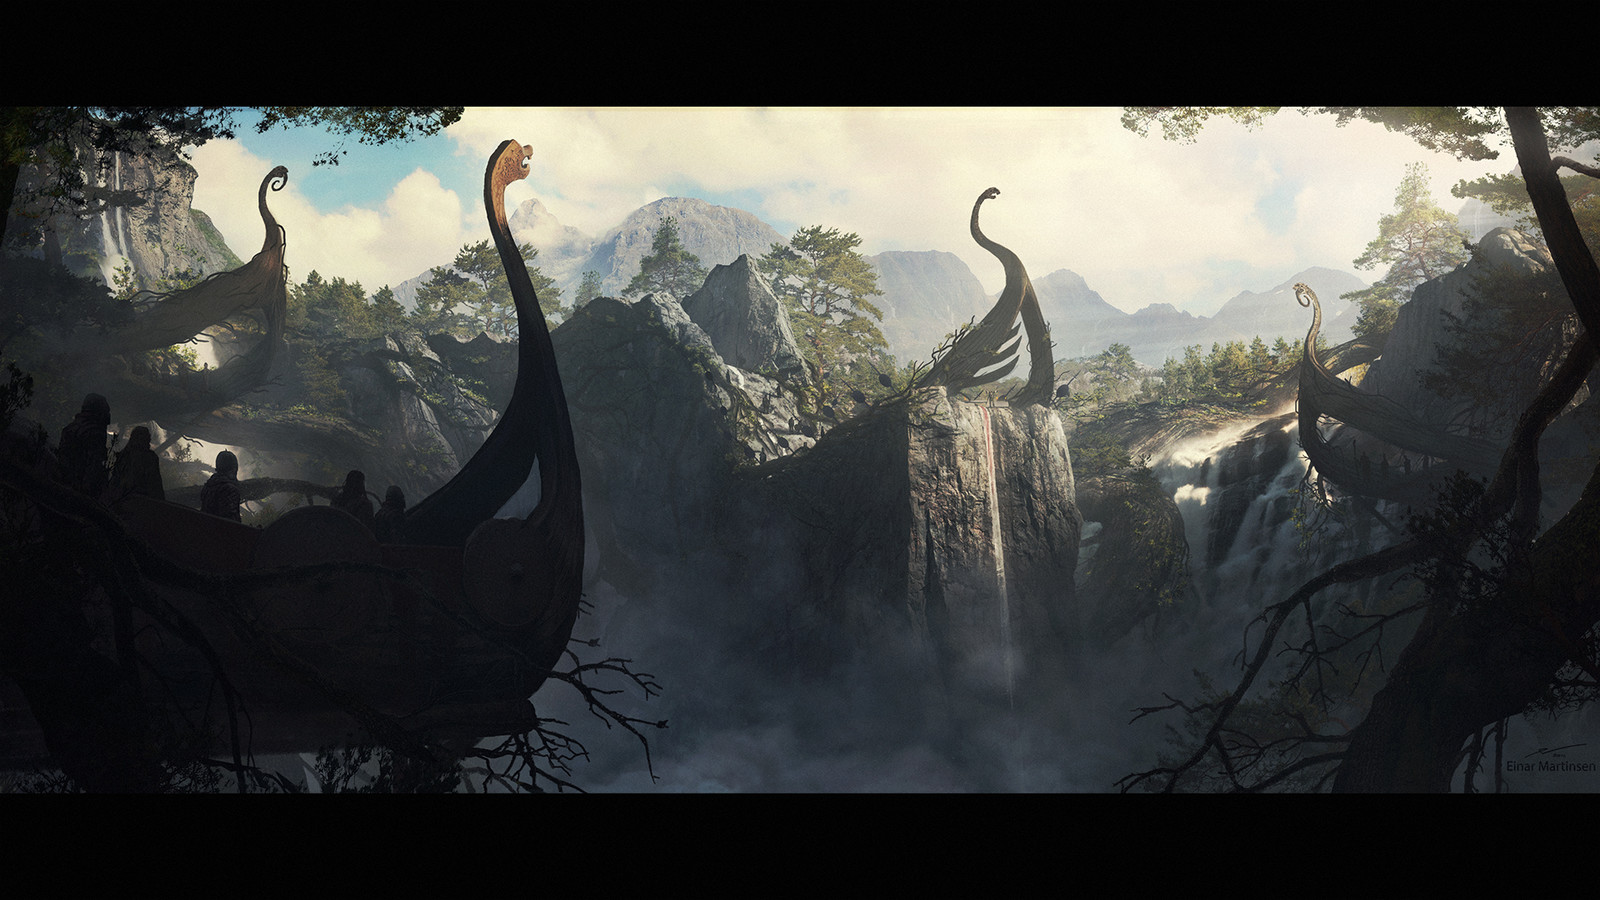 Production design course with Dylan Cole - Artwork by Einar Martinsen - Sacred place, shot 04